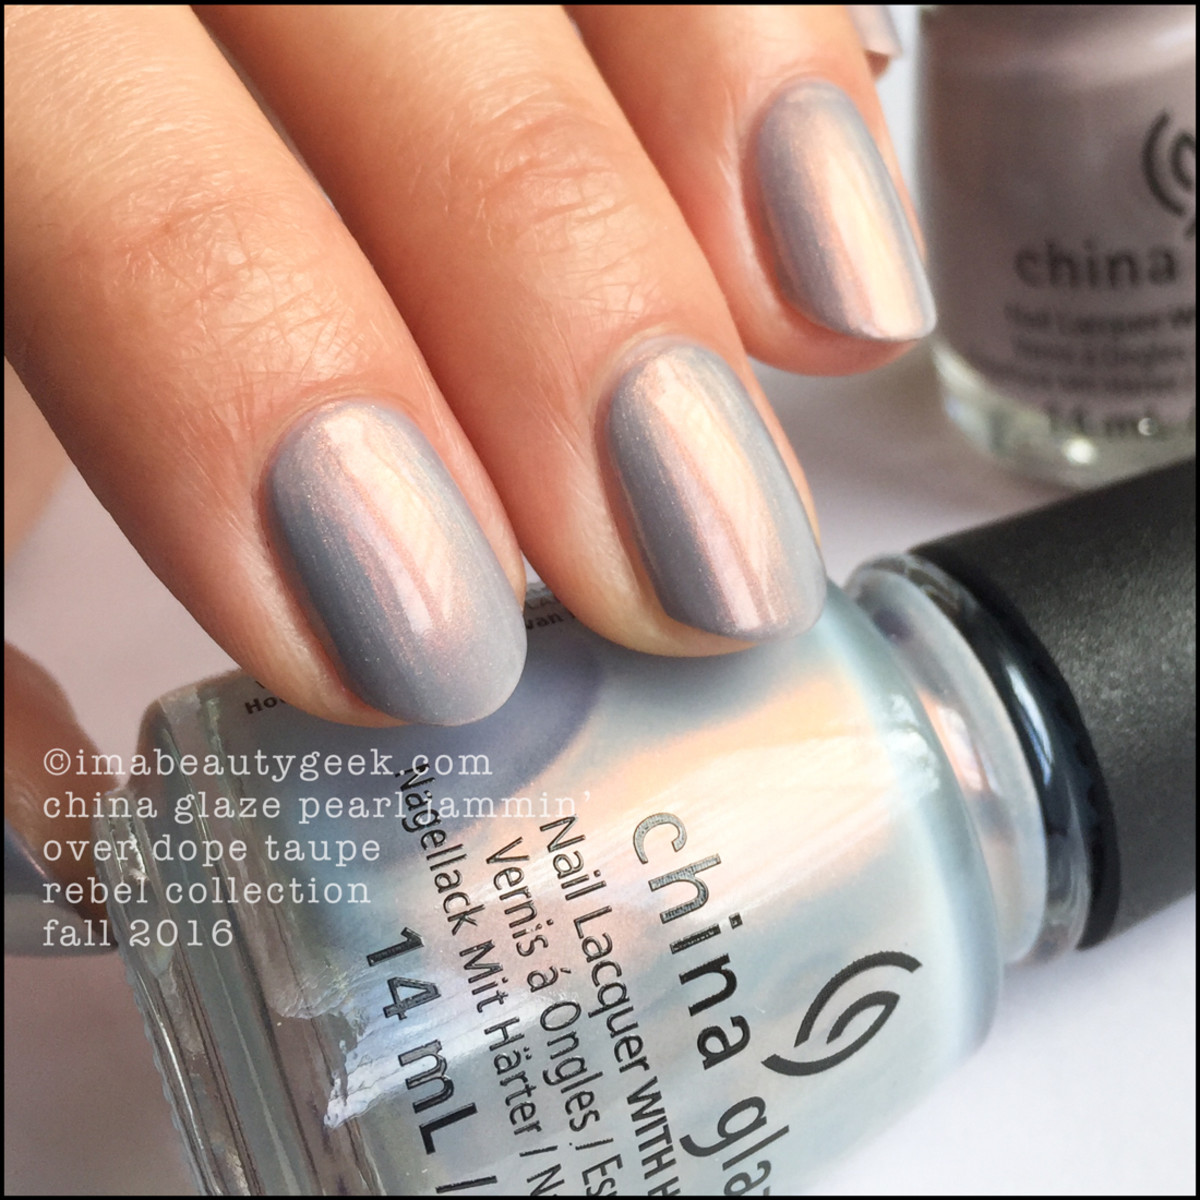 China Glaze Pearl Jammin over Dope Taupe_China Glaze Rebel 2016 Collection Swatches Review